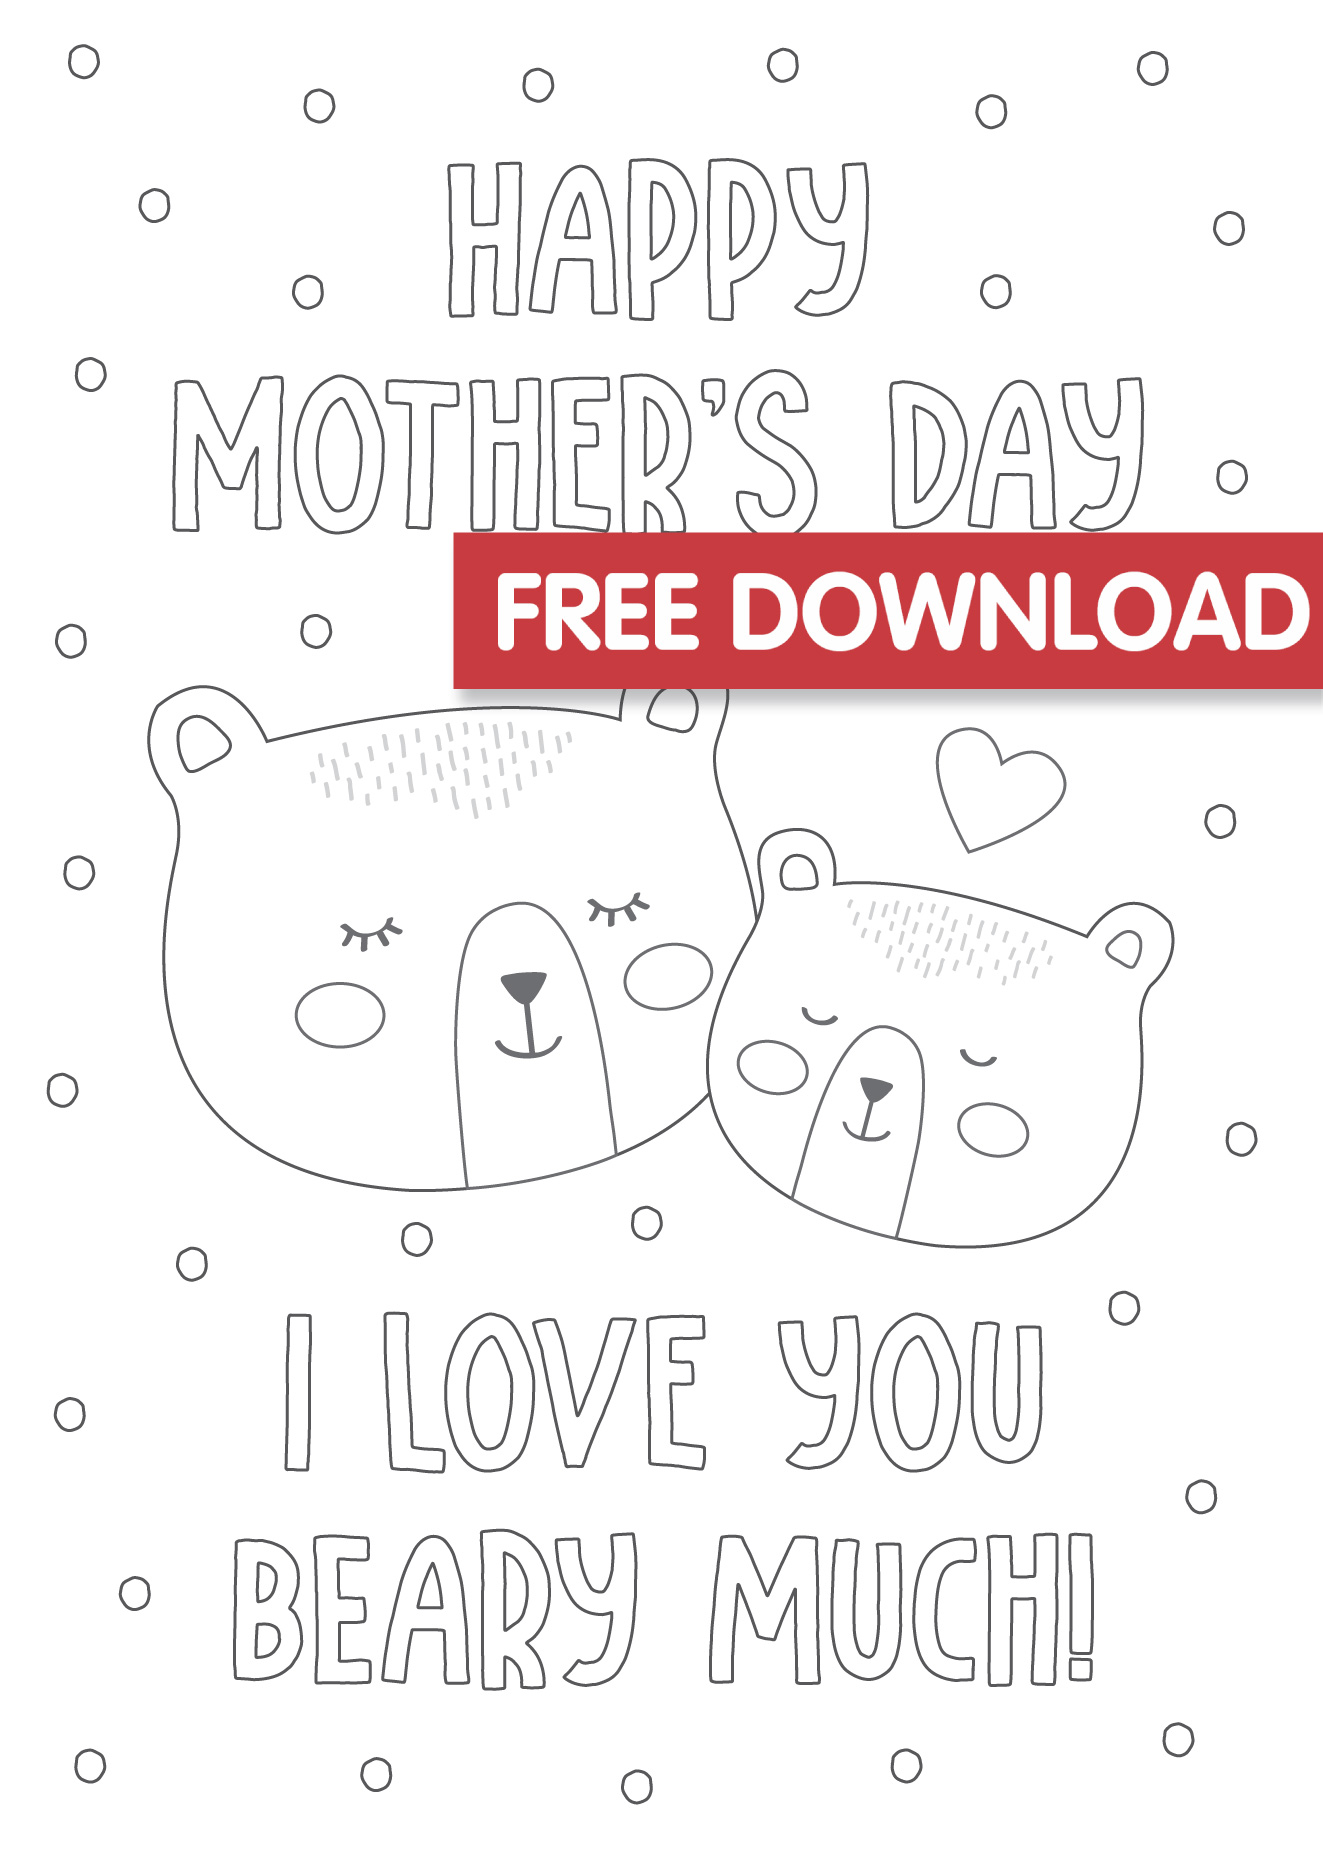 Free Mother's Day Colouring Card Printable